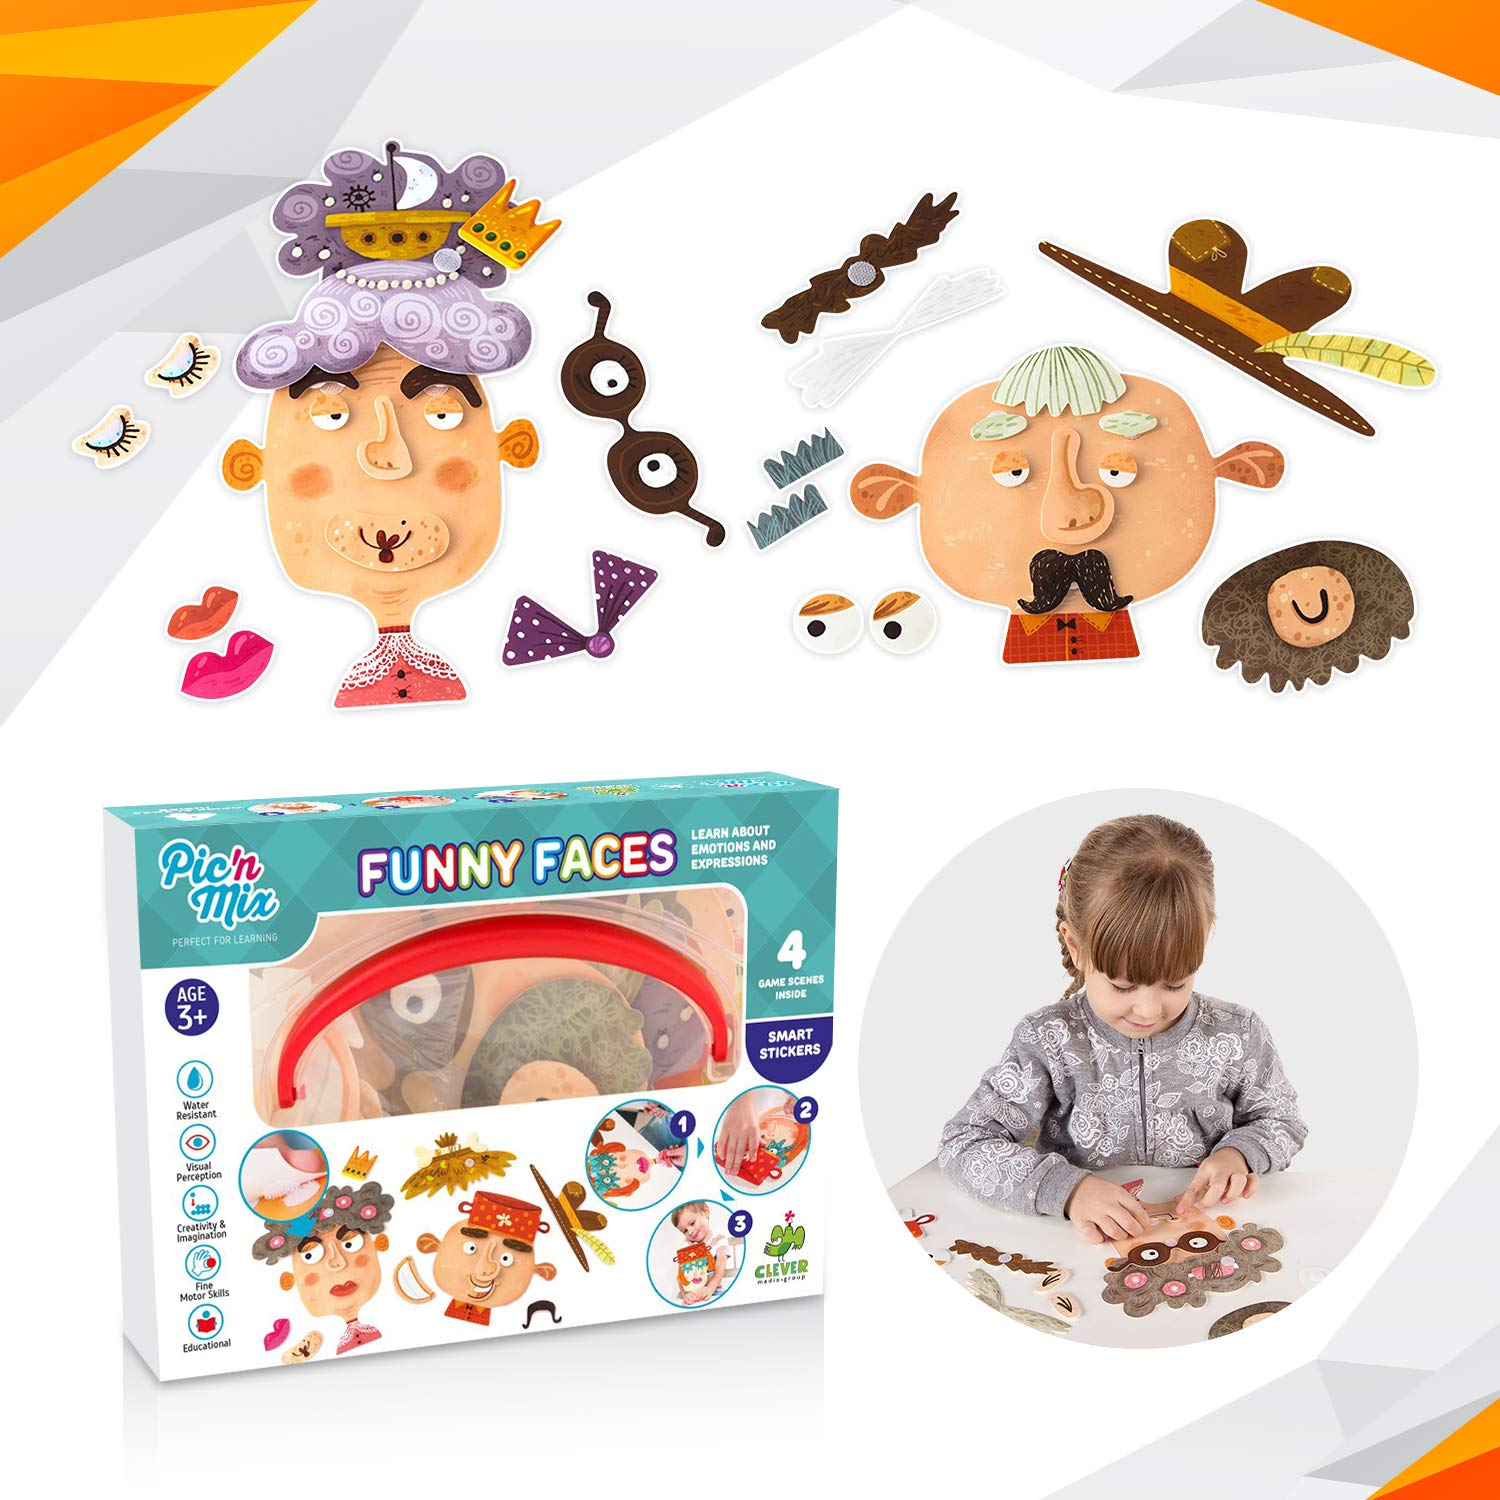 Funny Faces Puzzles for Kids   Picnmix Board Game for Toddlers 3 Years and Up. Educational Preschool Learning Toy. Fine Motor Skills Toy for Boys and Girls